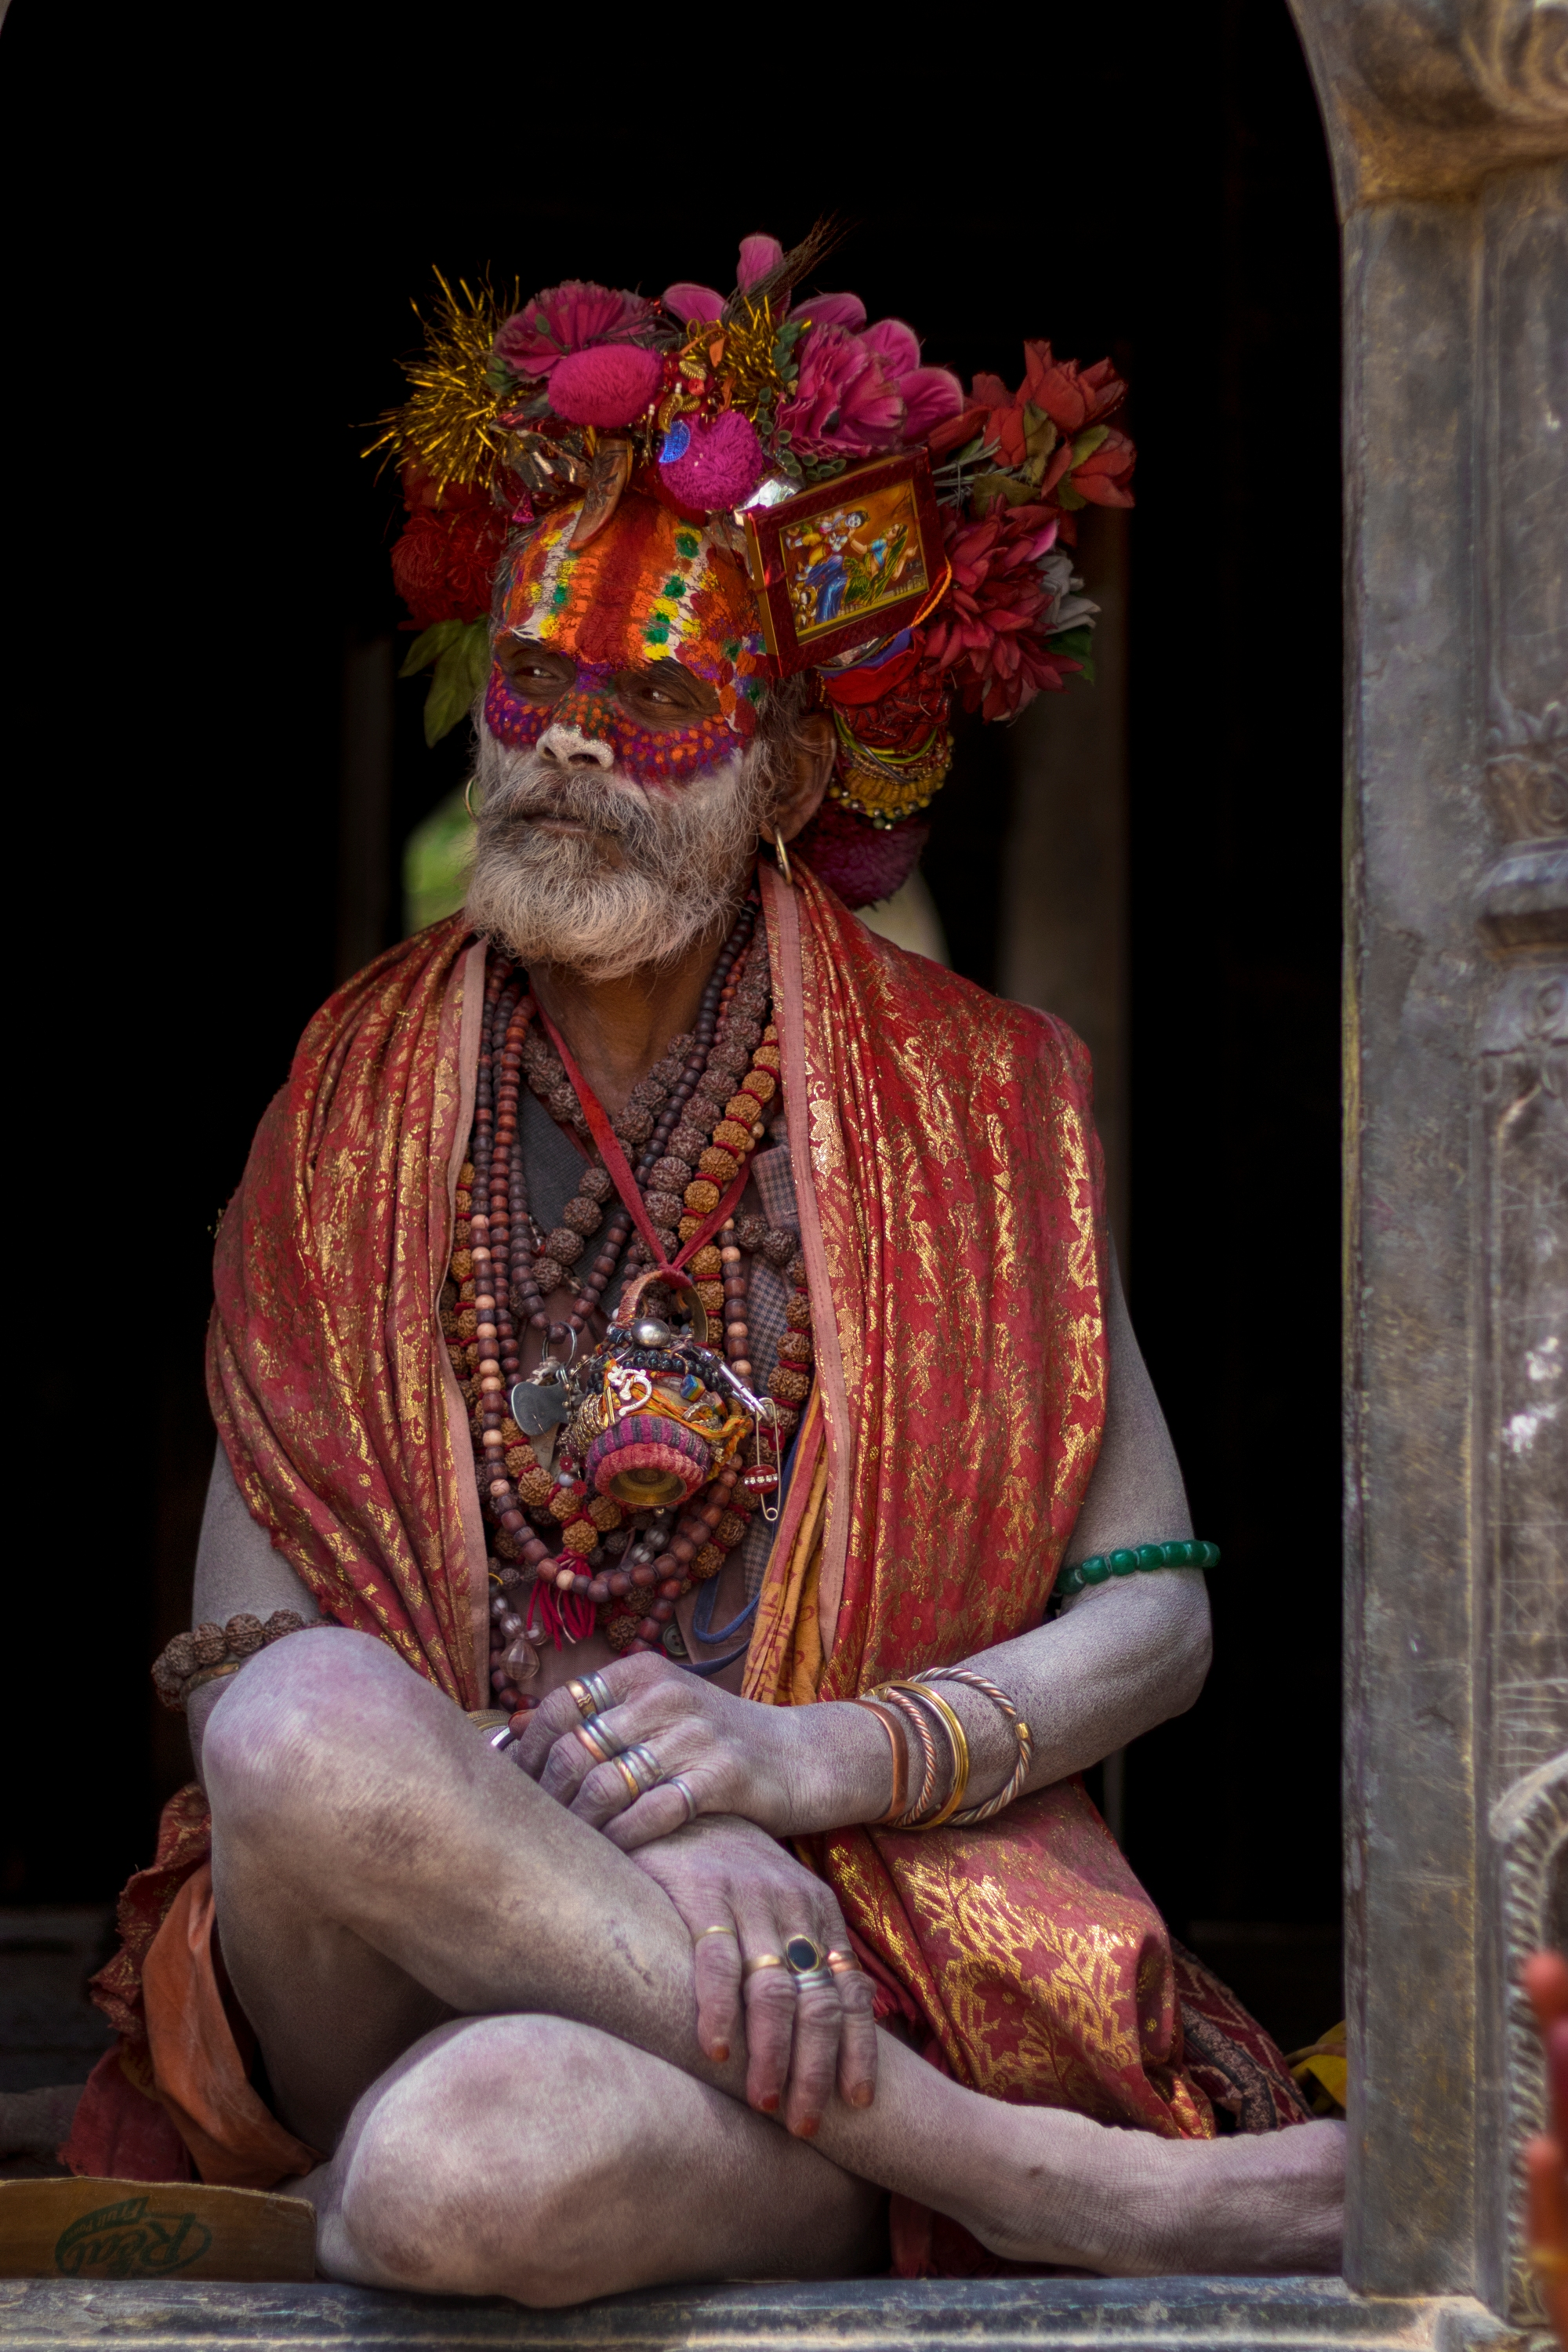 Met him at Pashupatinath